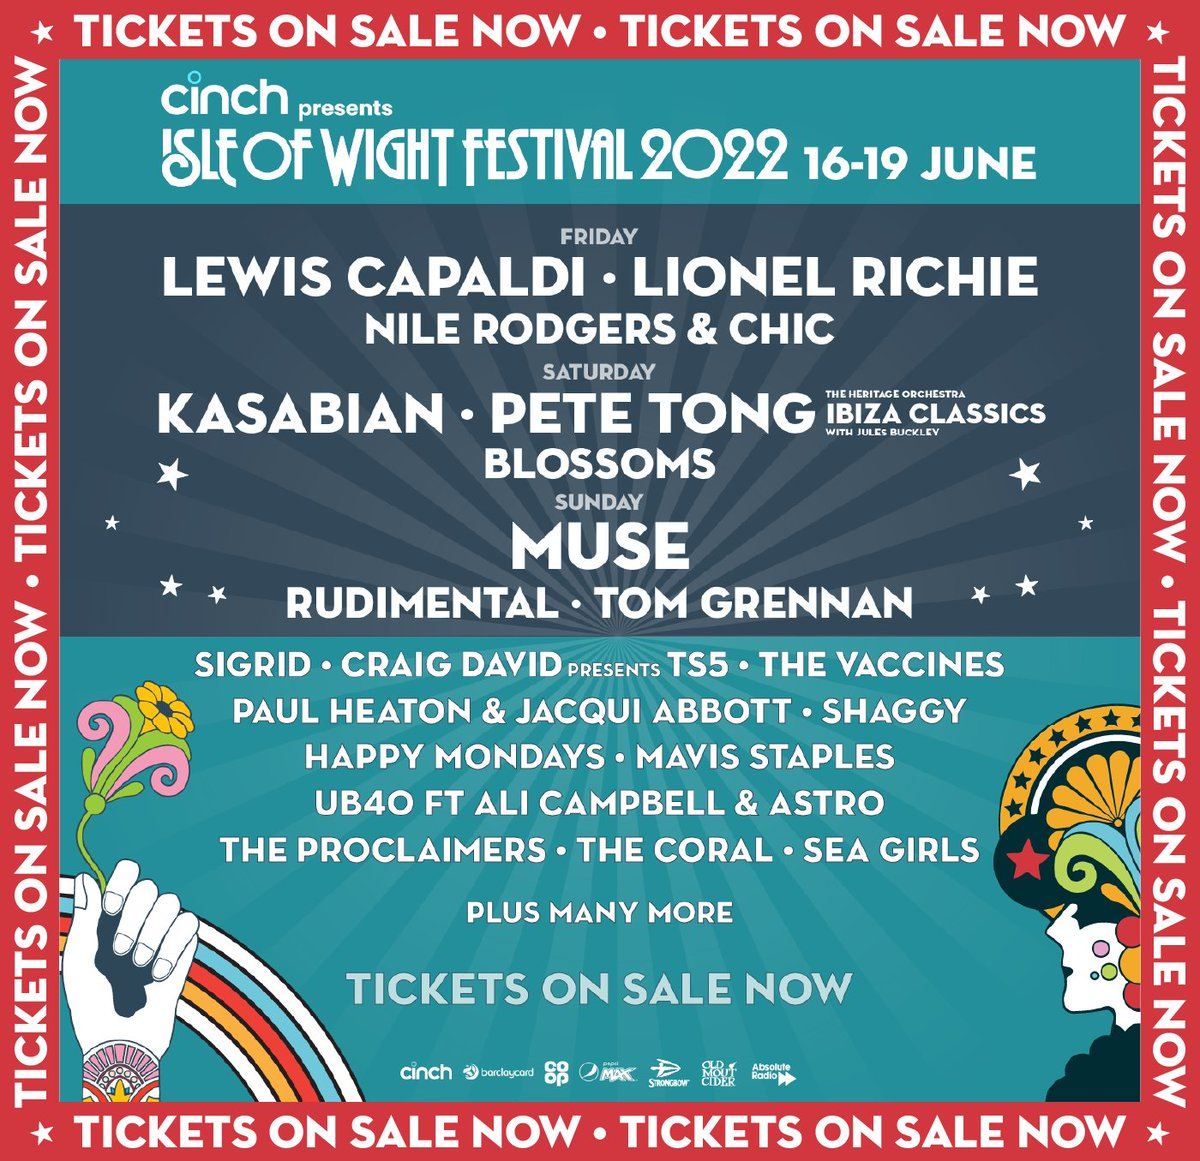 🚨Tickets for @cinchuk presents the Isle of Wight Festival 2022 are on sale NOW🚨  Purchase your tickets and find further details here: bit.ly/3upG7WR  We can't wait to welcome you all back to the Island in June for the biggest party of the summer🎪  #cinchxIOW #IOW2022